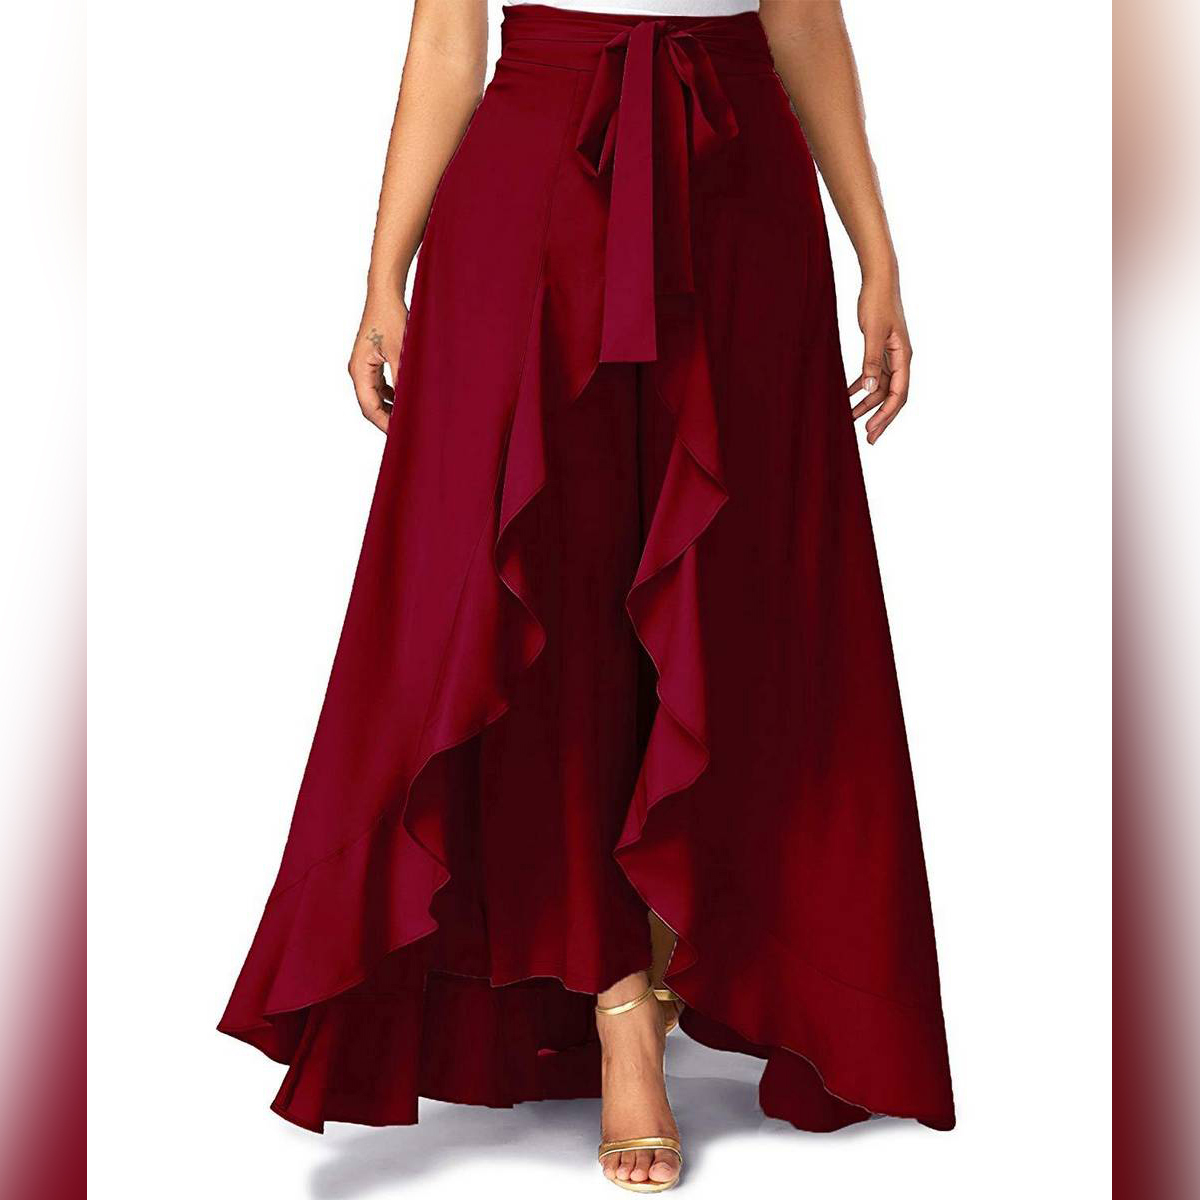 DESIGNER Maroon Solid Flare Stylish Skirt With Attached Trouser For Women For Girls